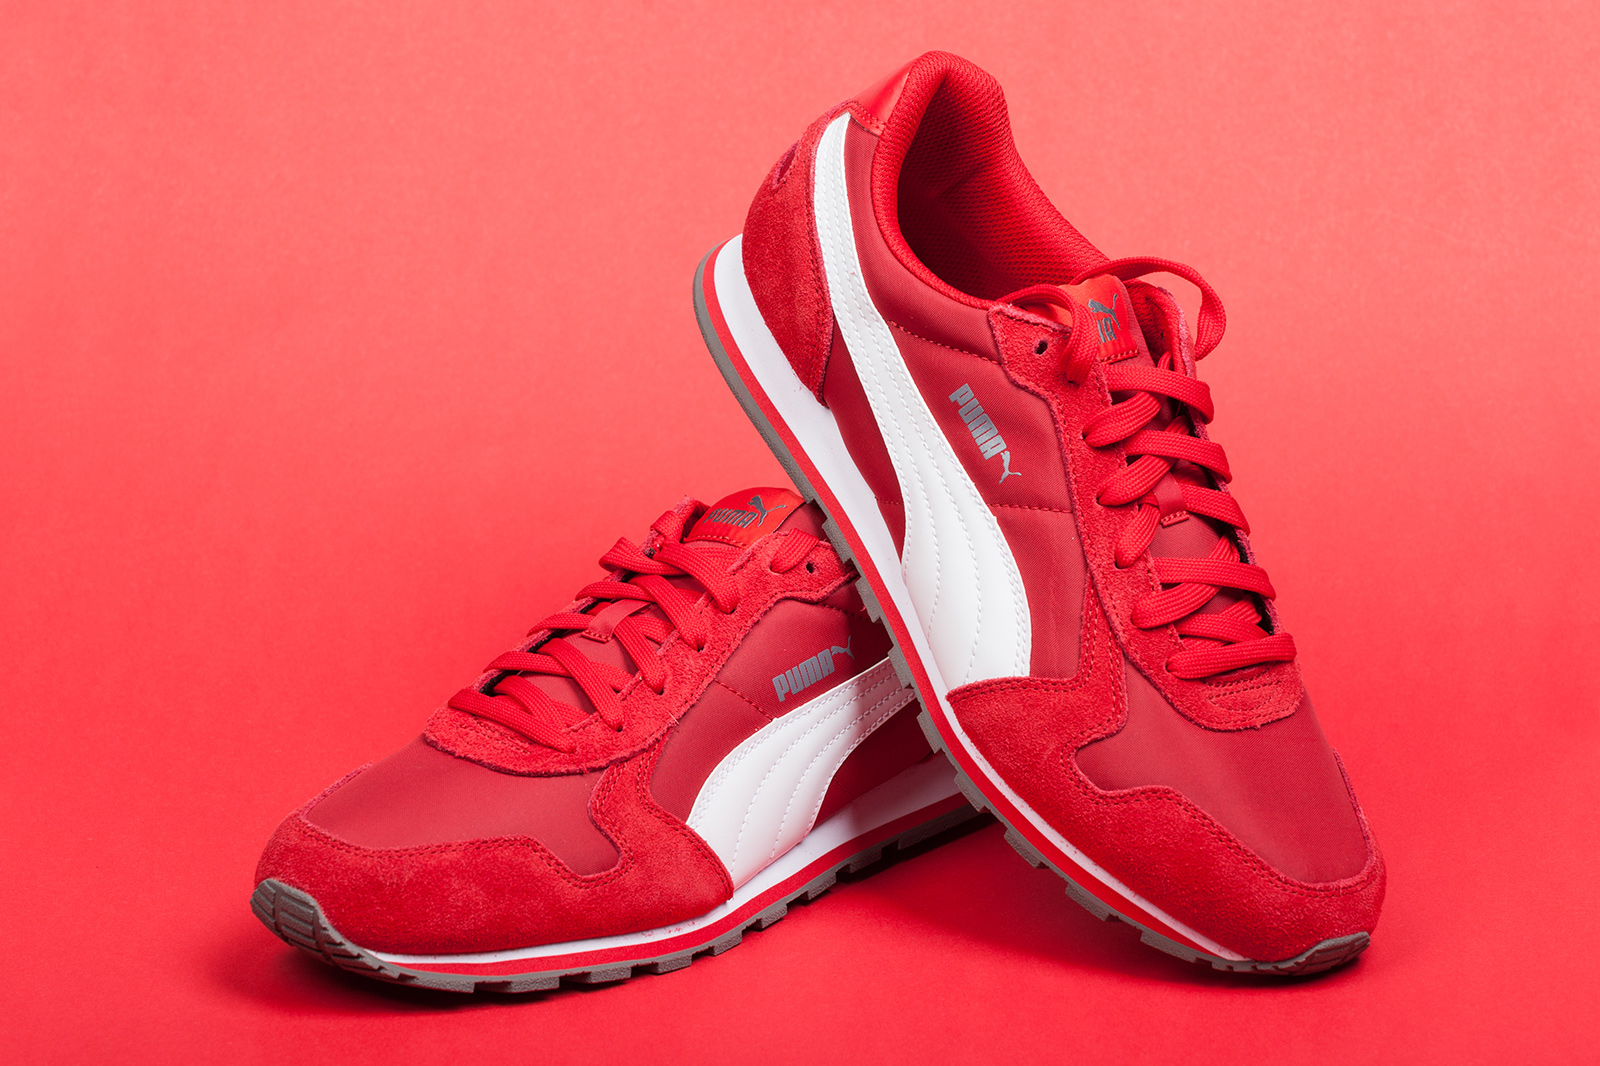 Load up on Puma apparel and footwear in